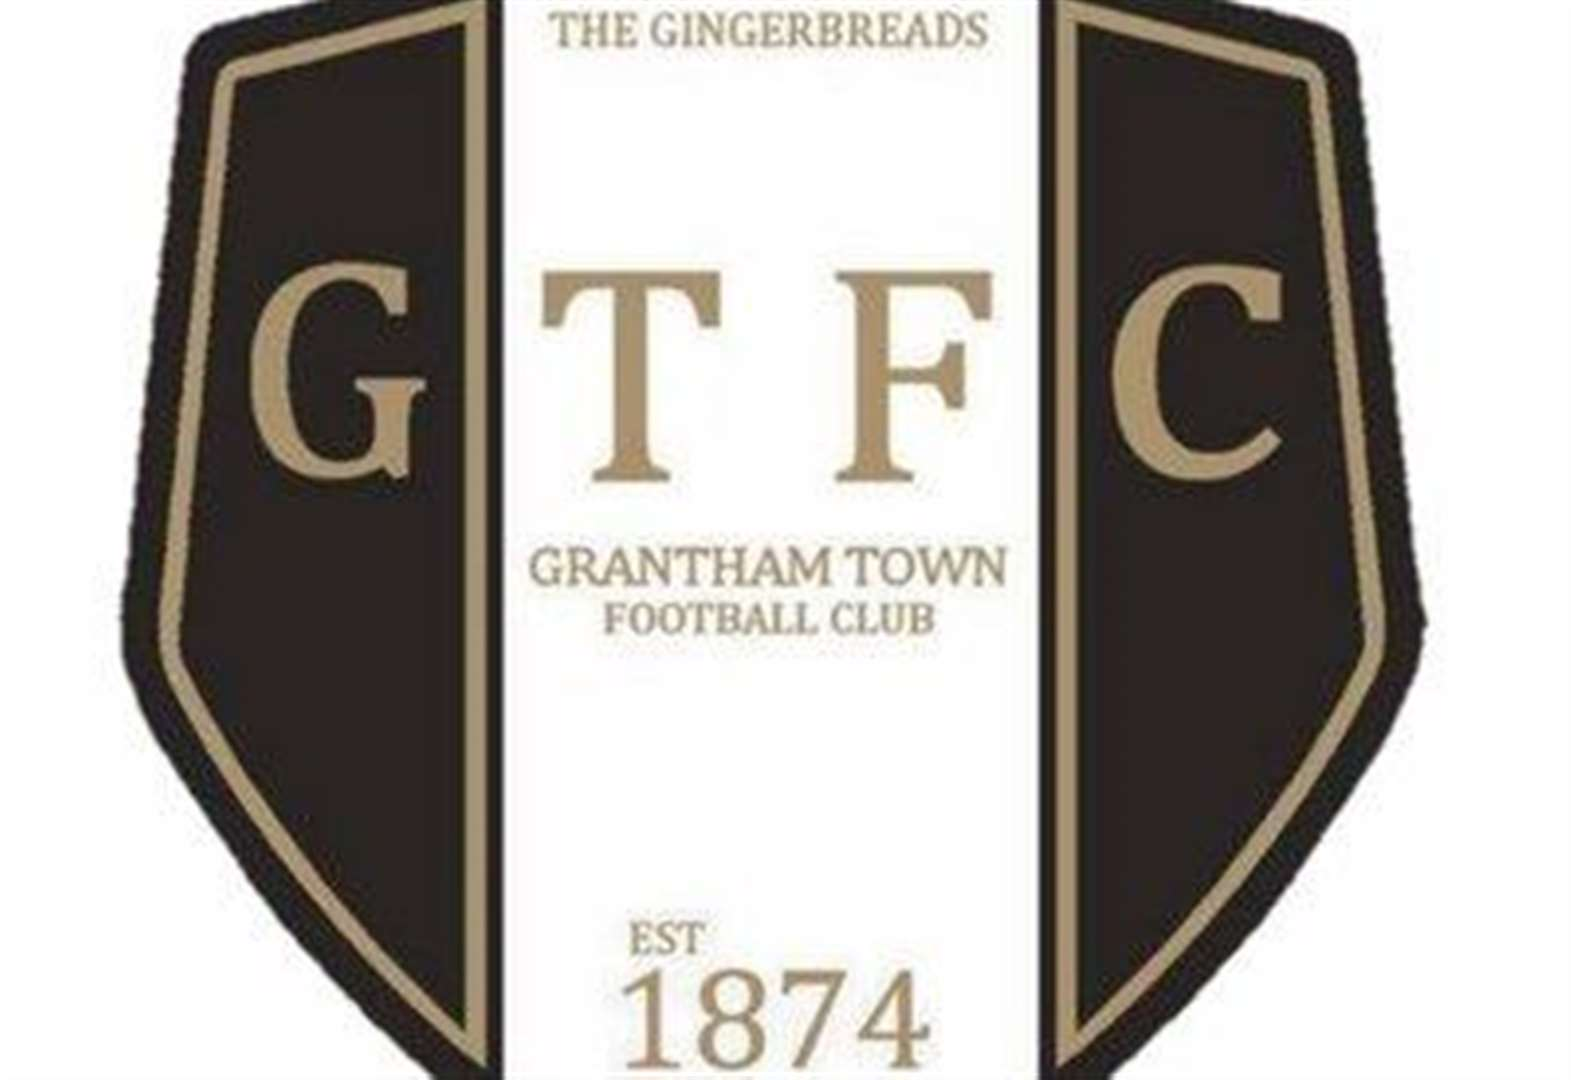 This week's Gingerbreads lottery winners